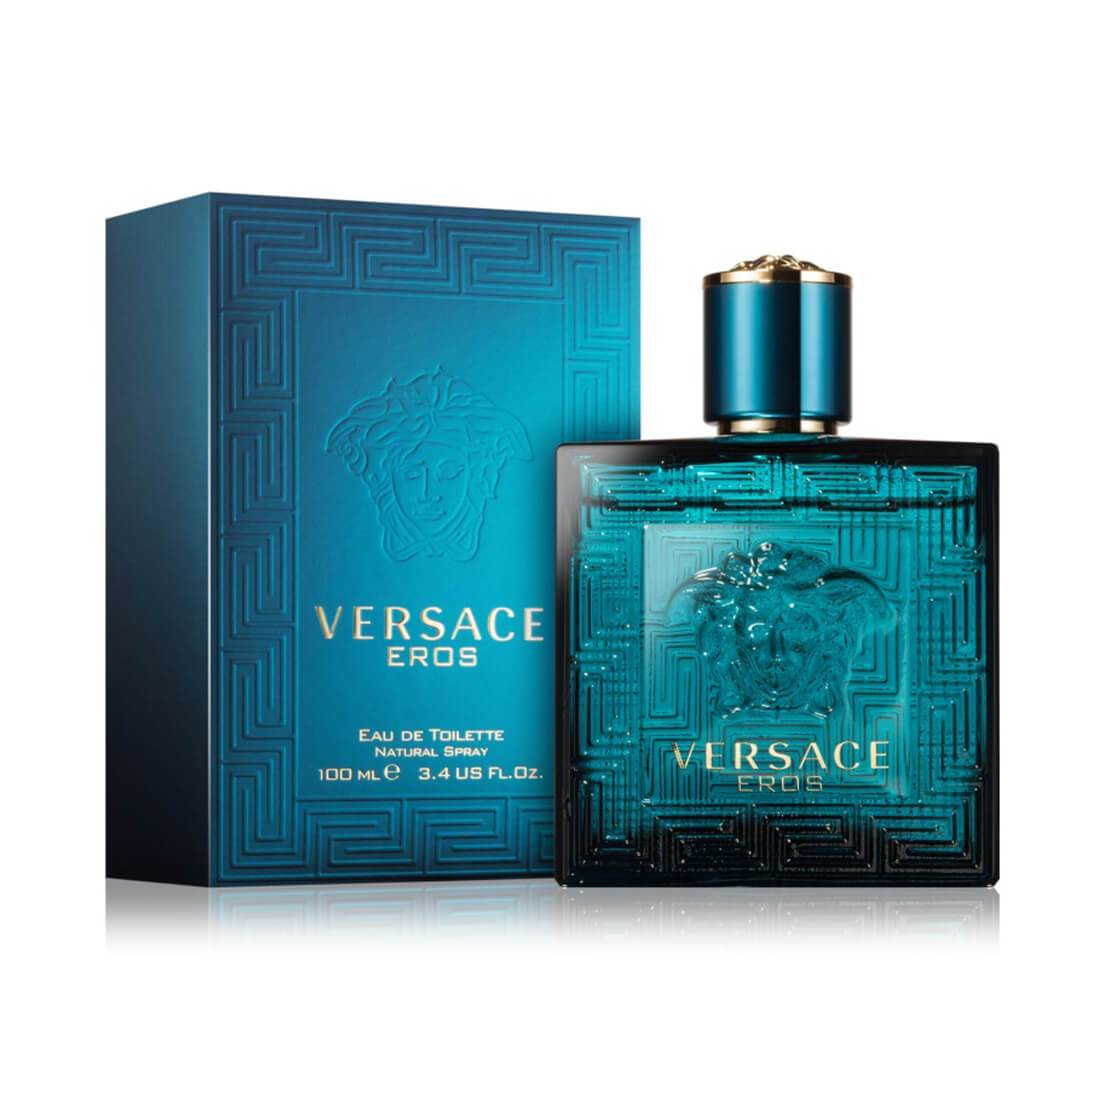 Versace Eros EDT Perfume For Men